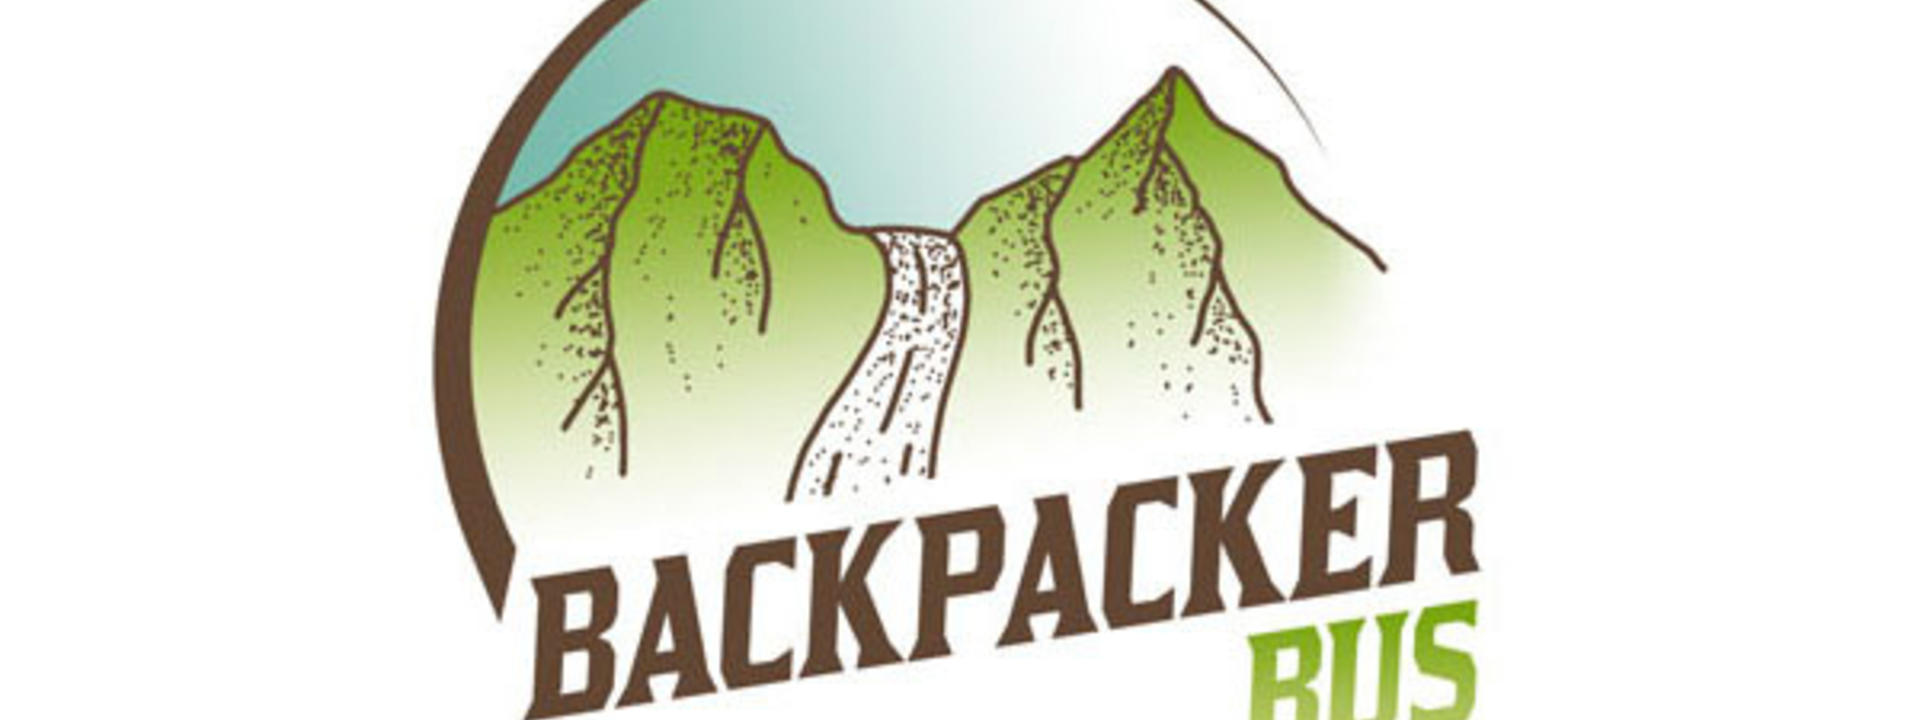 Logo: Backpacker Bus New Zealand